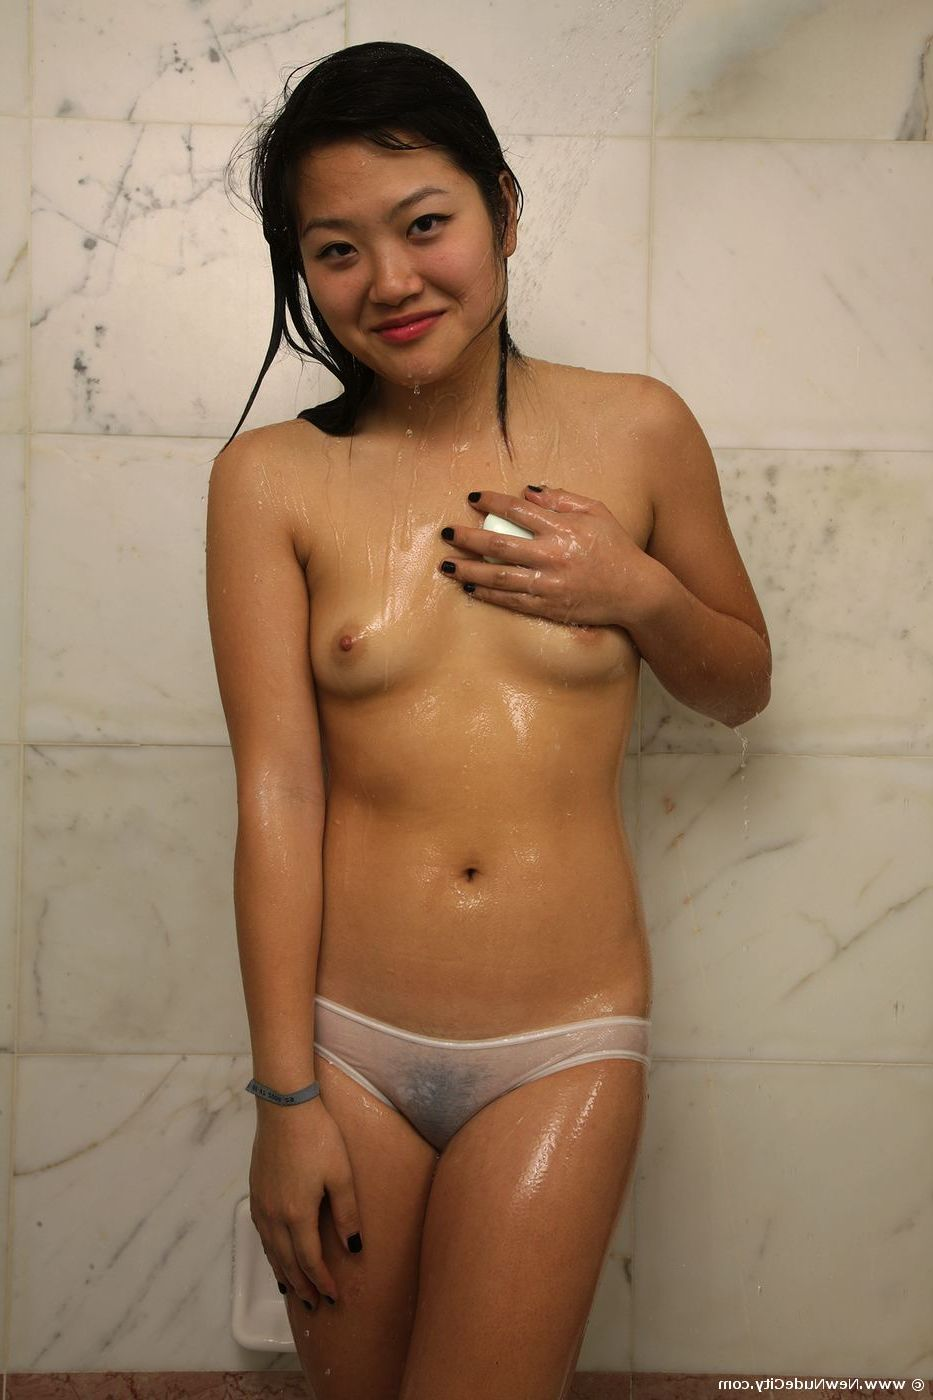 girls Asian shower sex nude